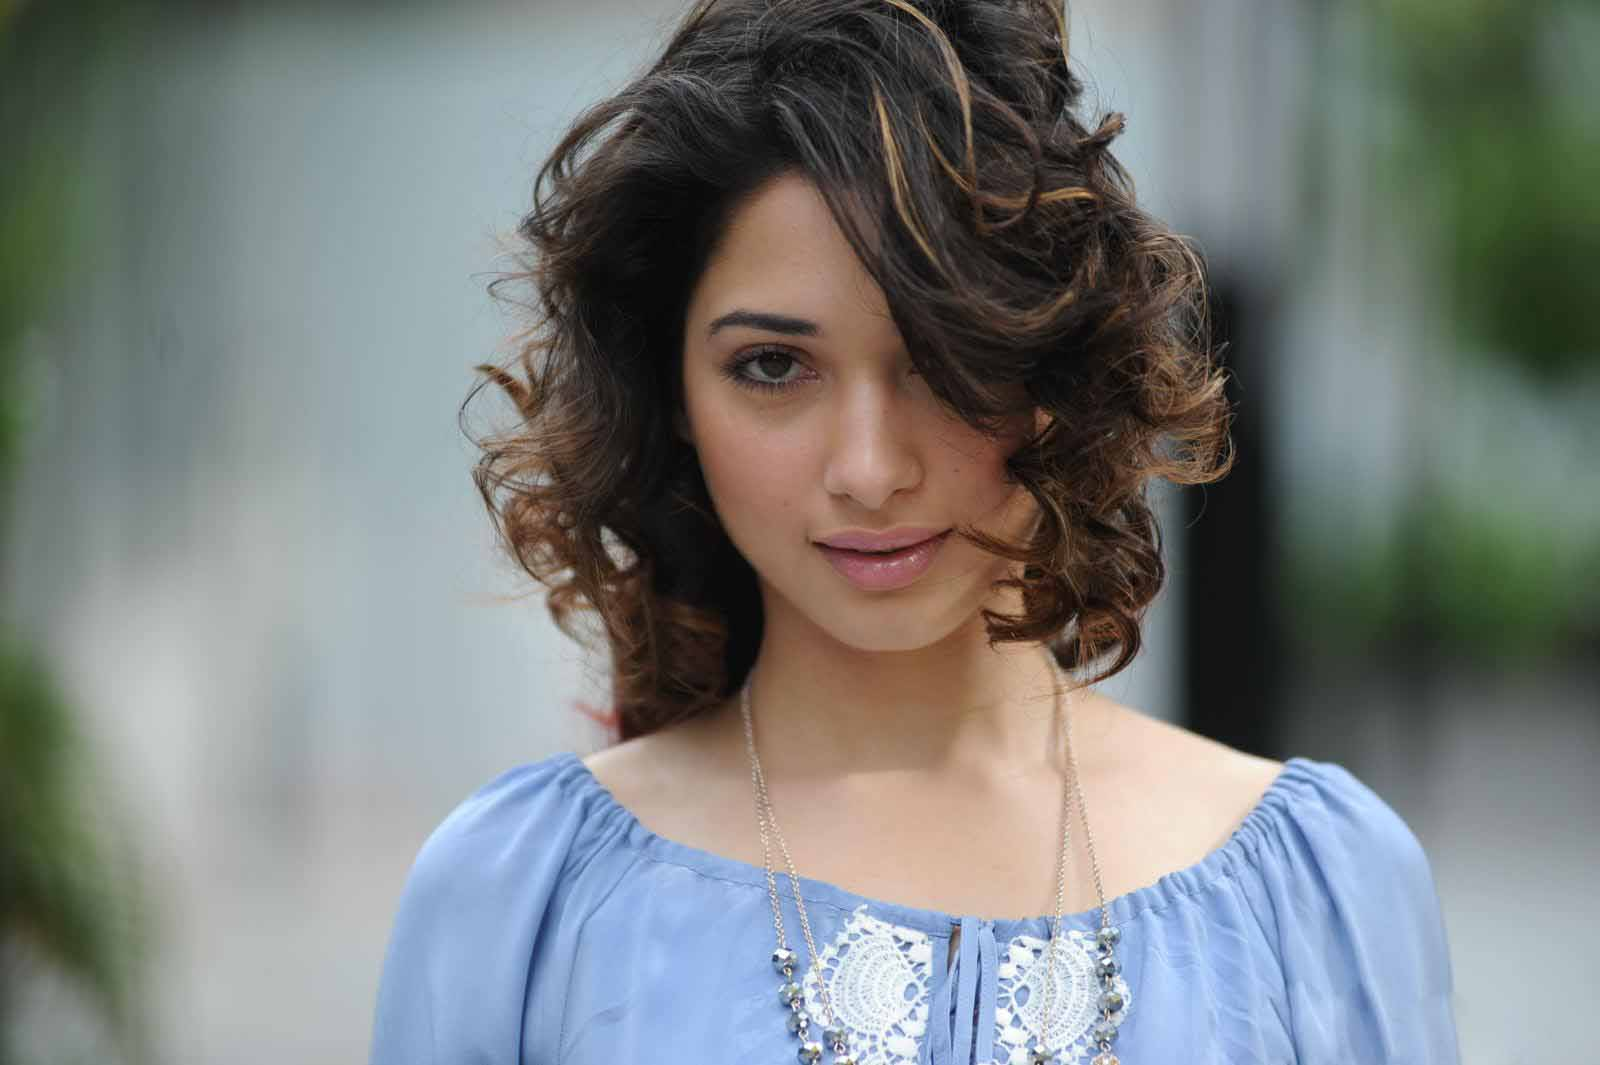 tamanna bhatia Most Beautiful Indian Girl